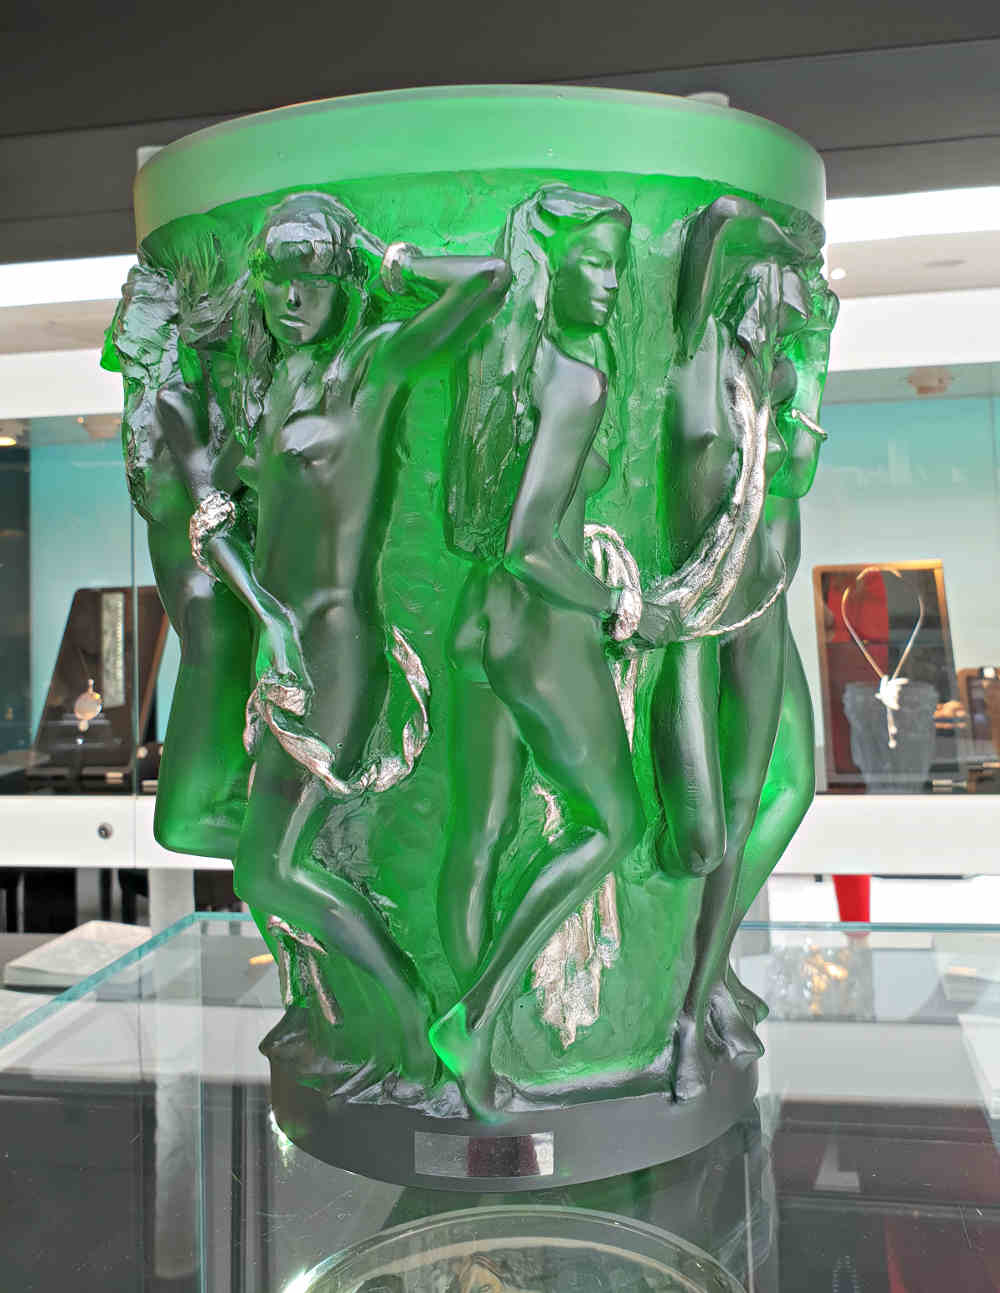 Erotic London, Erotic Art London, Erotic Art in London, Lalique